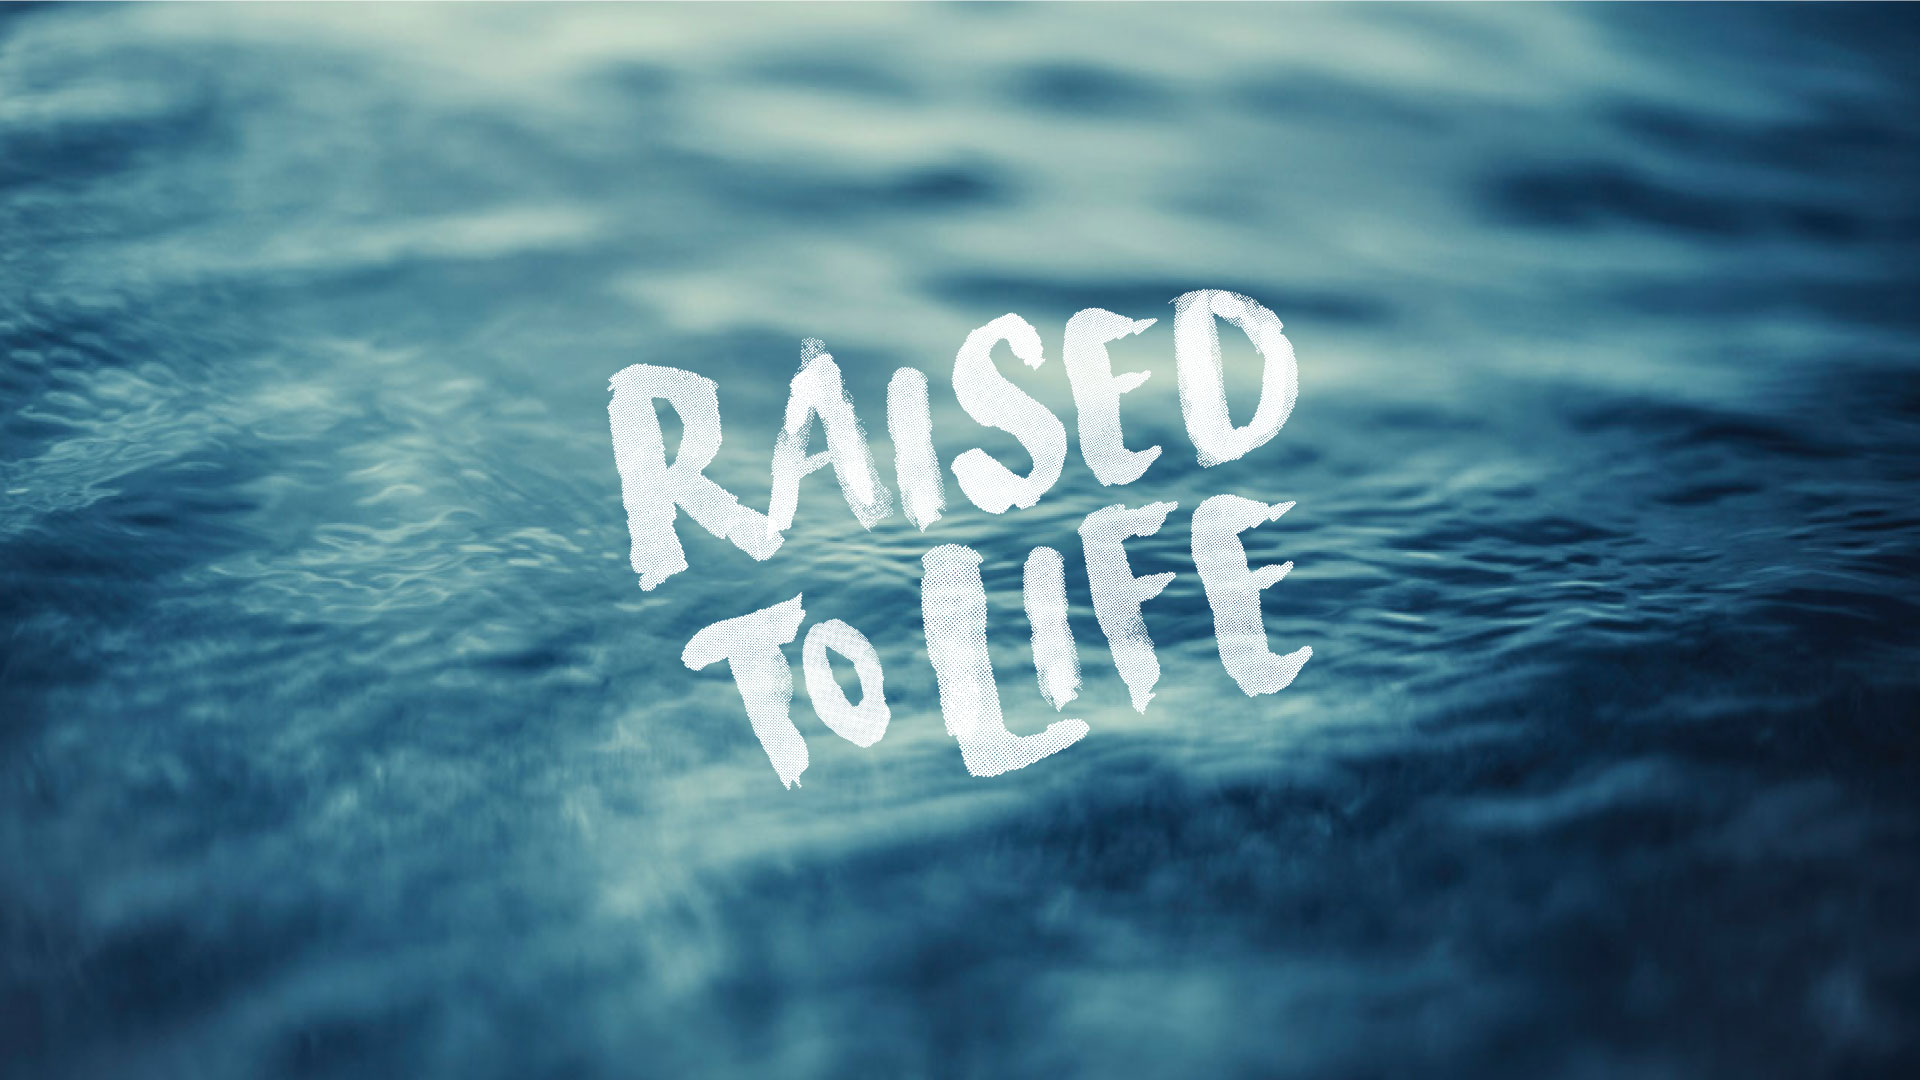 Raised-To-life-1